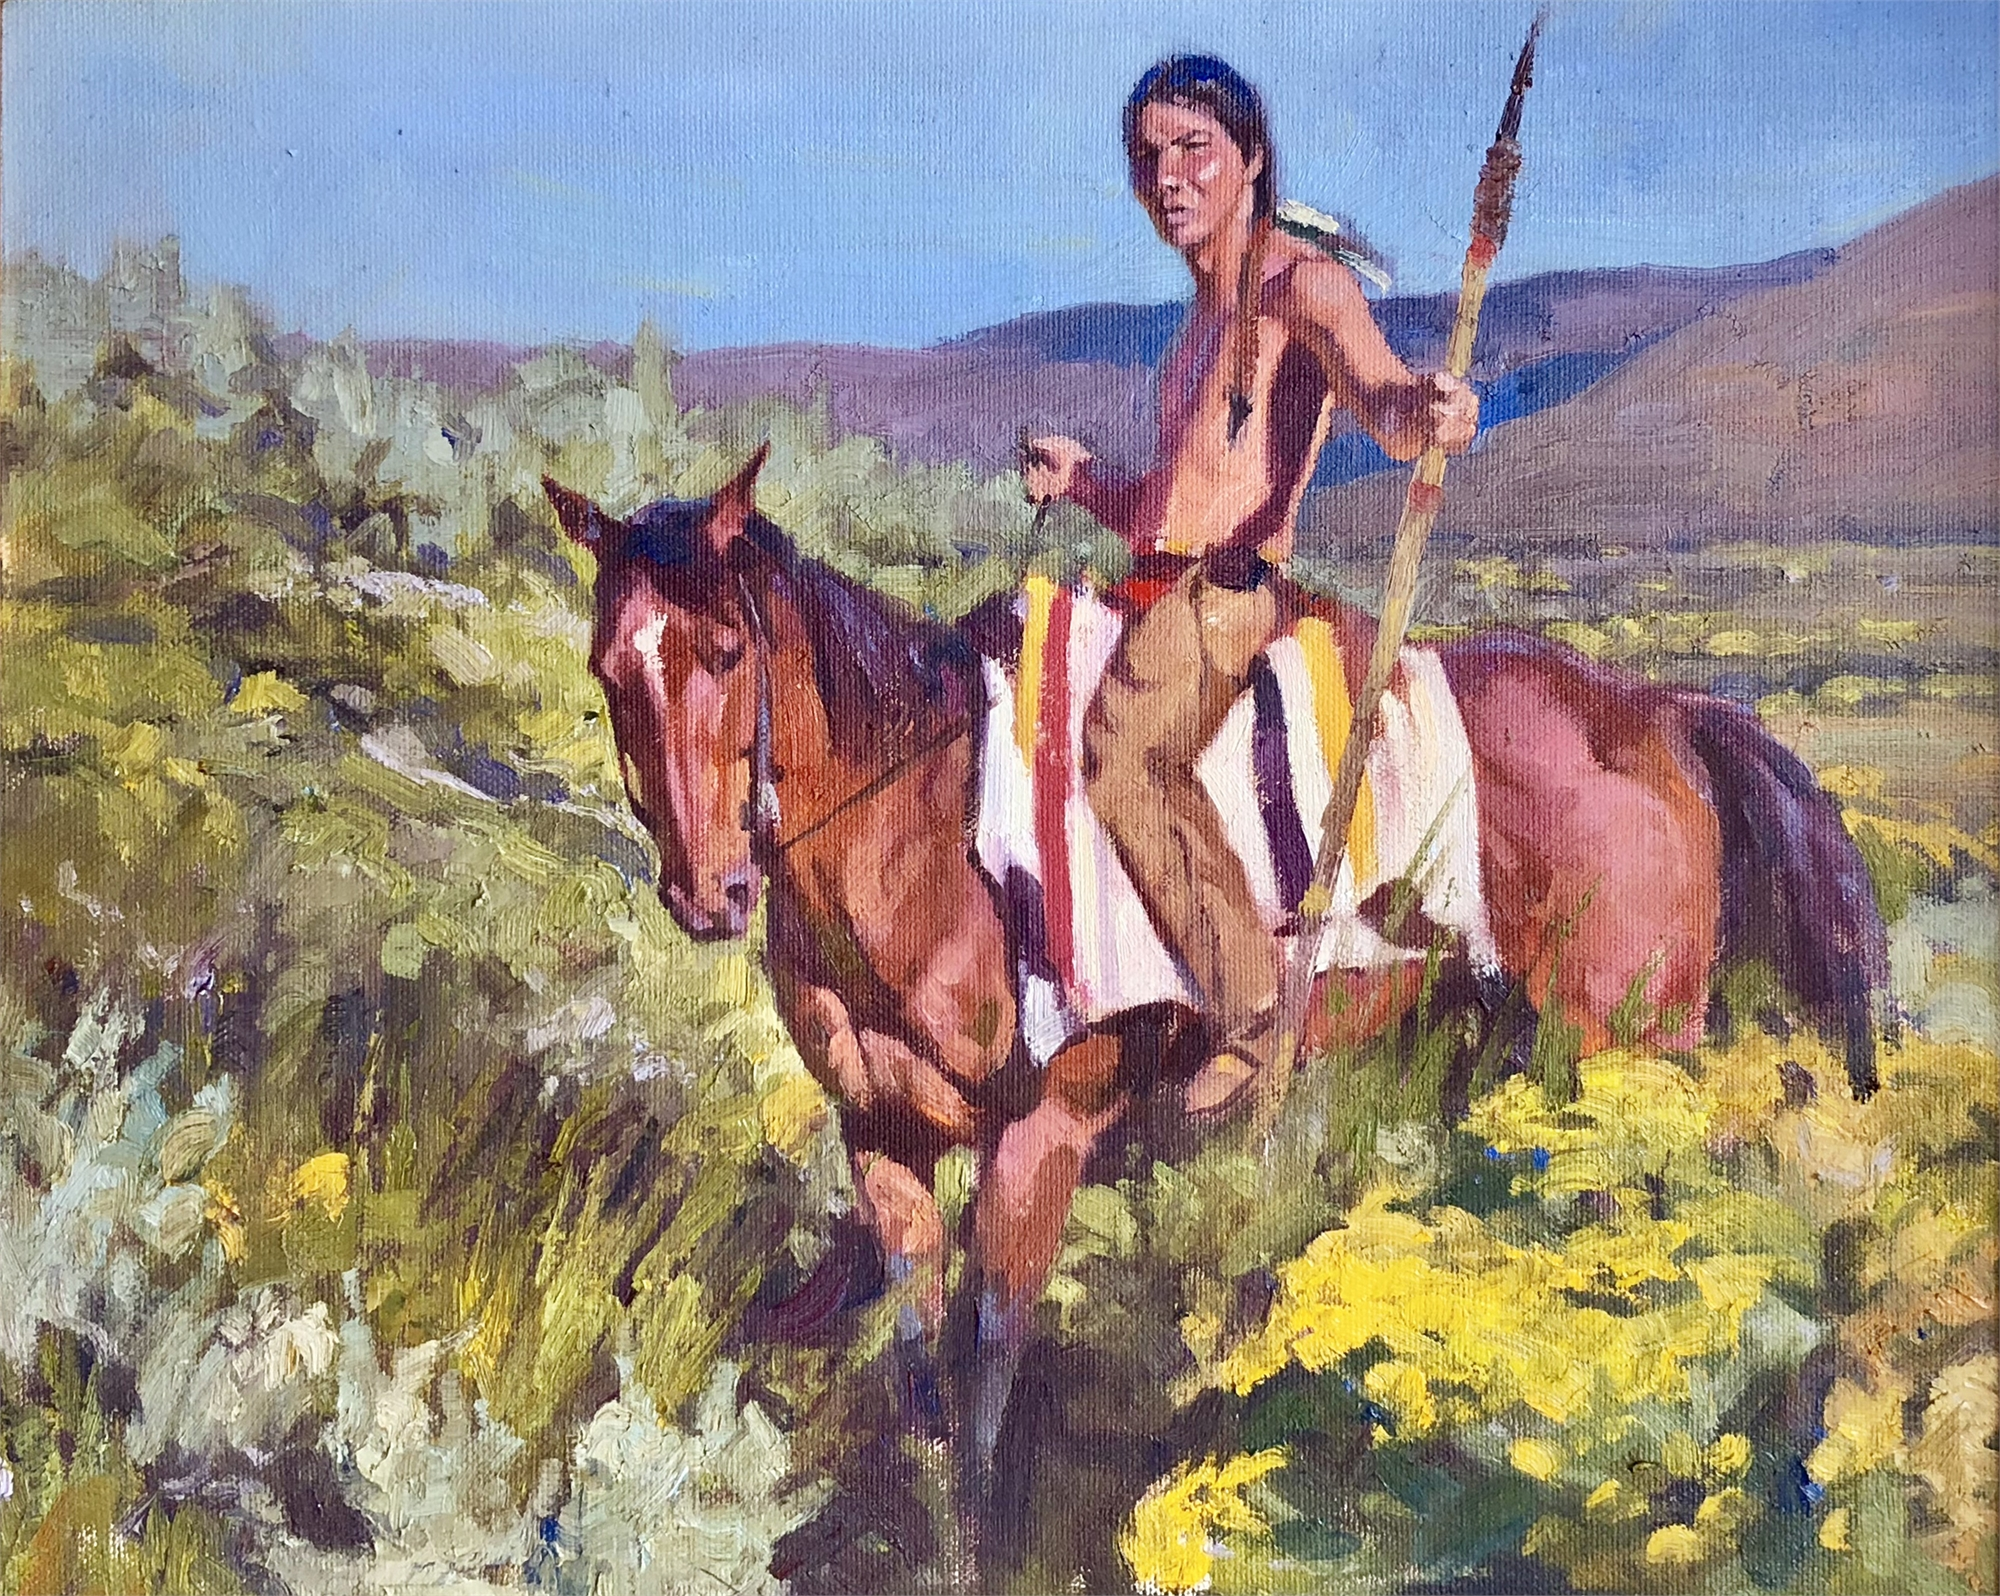 Arapaho Soldier by Charles Dayton